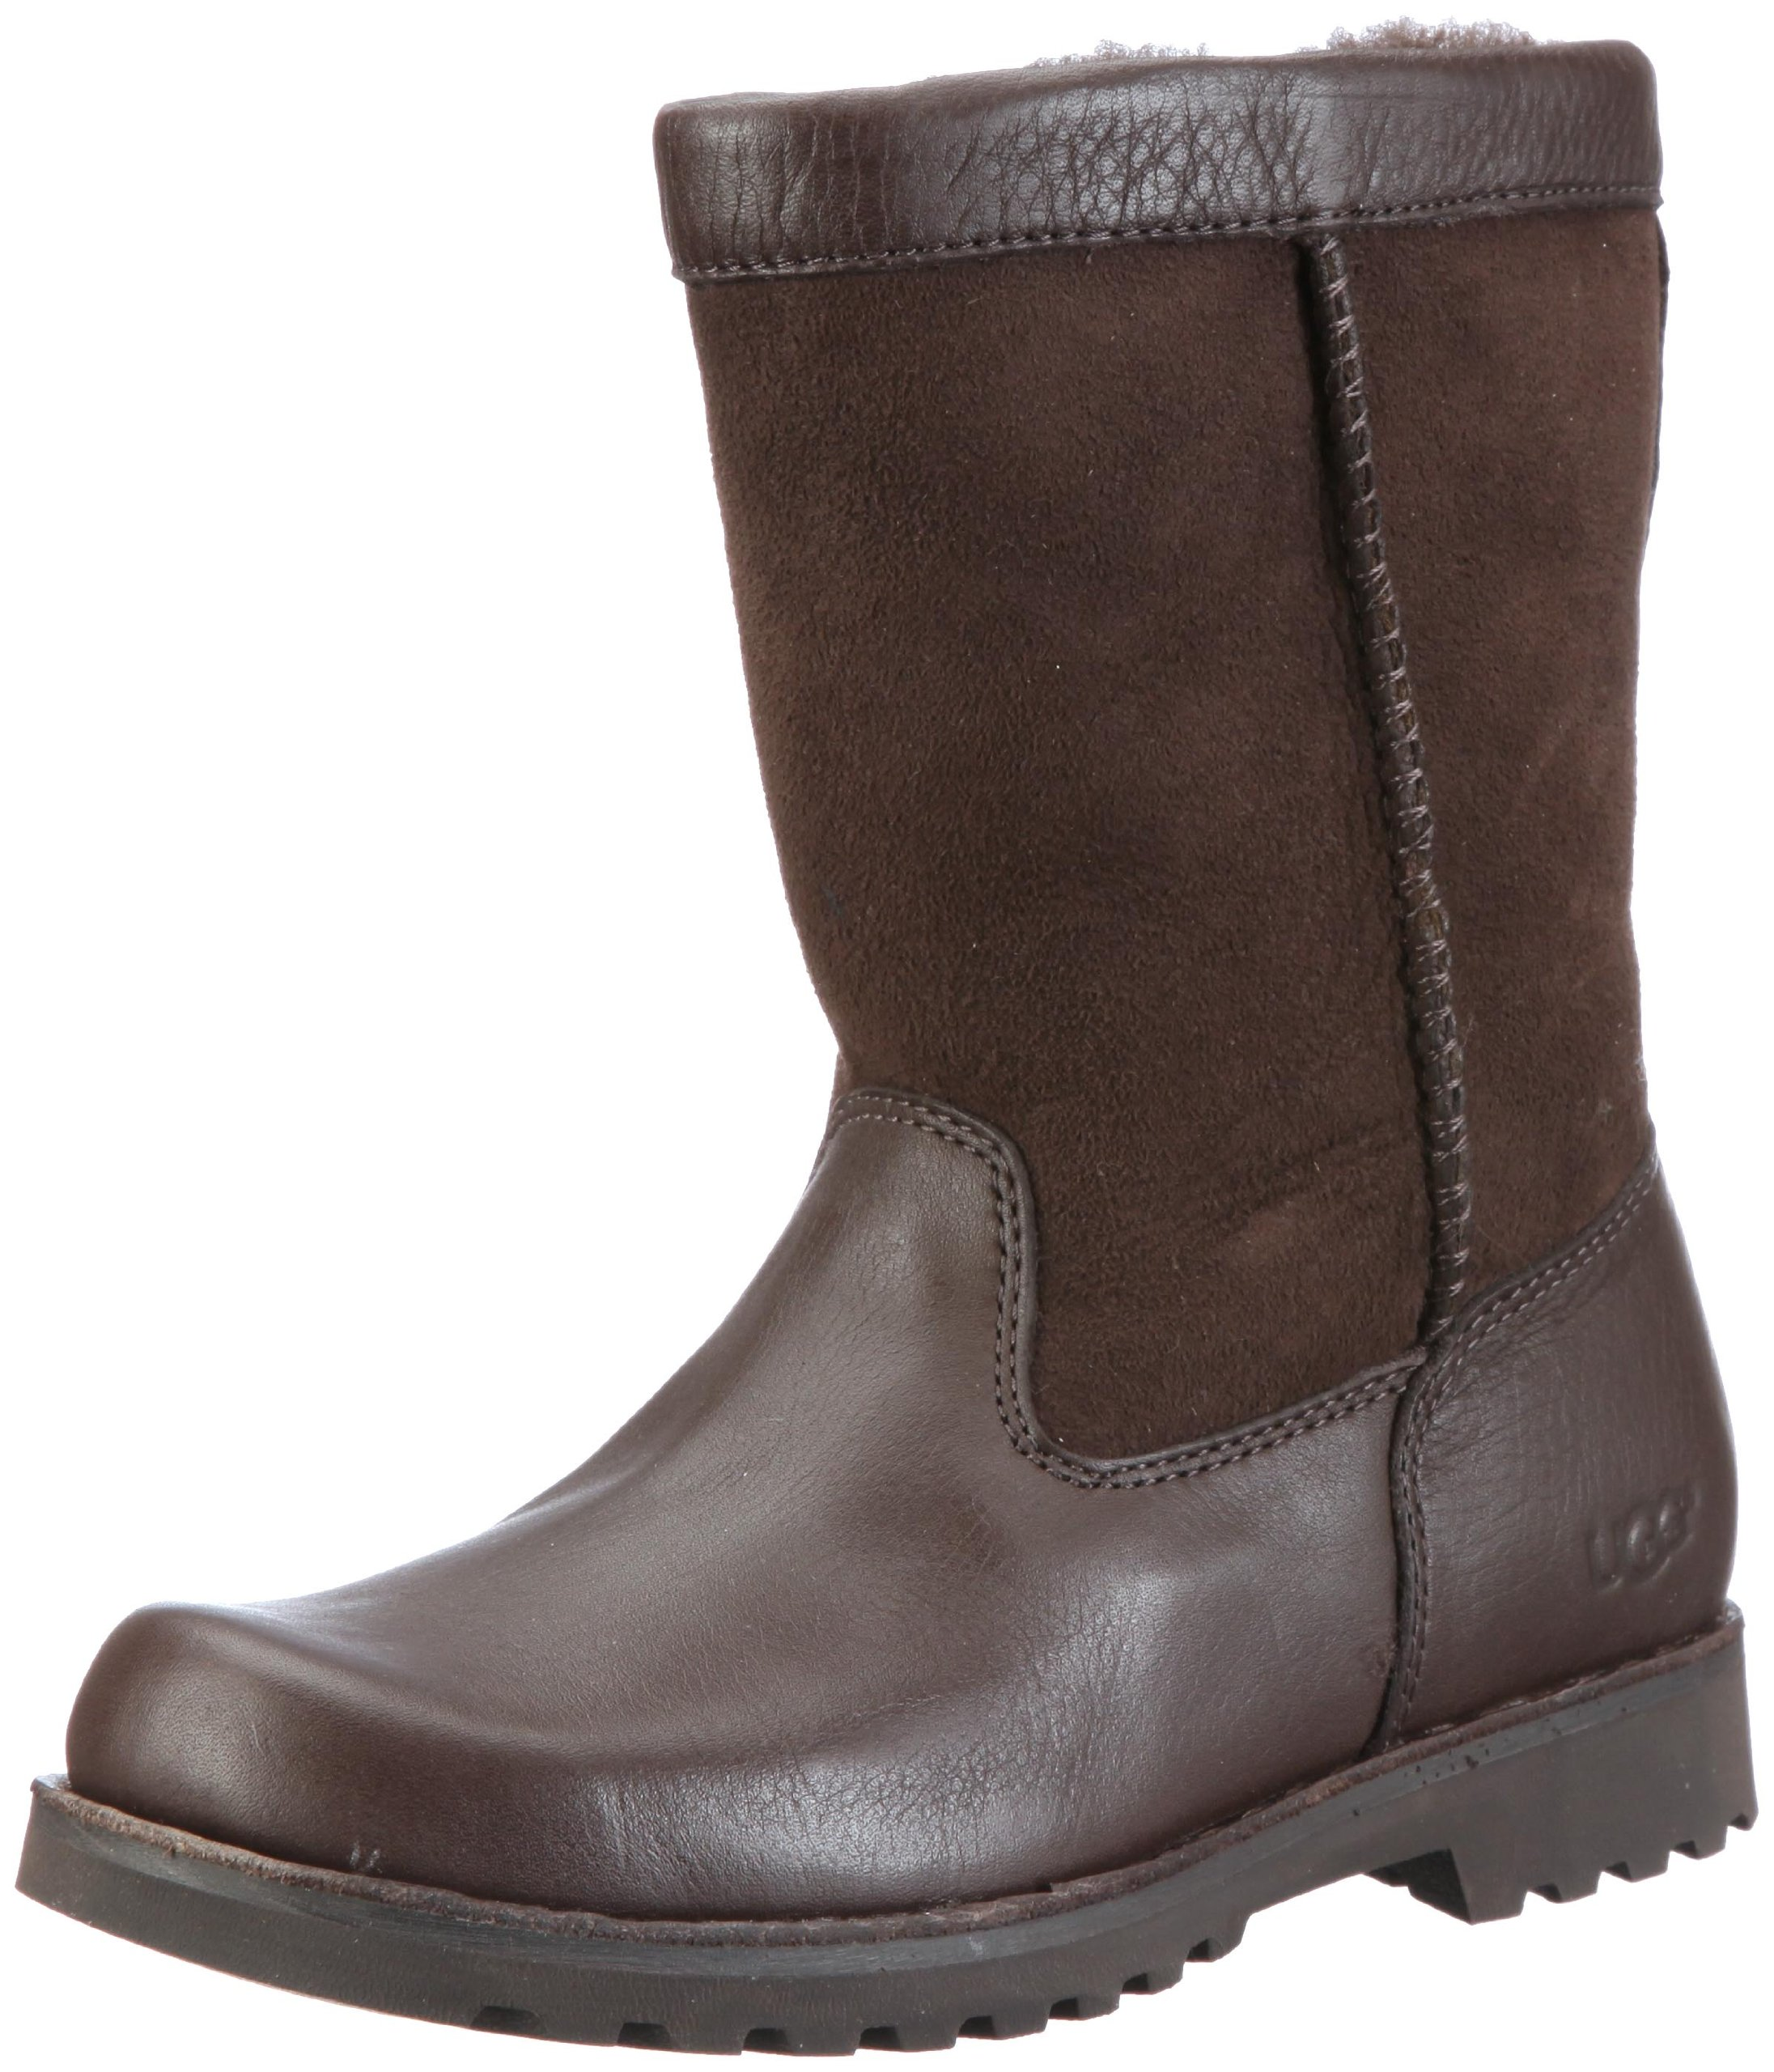 UGG Australia Children's Riverton Suede Boots,Chocolate/Chocolate,4 Child US by UGG